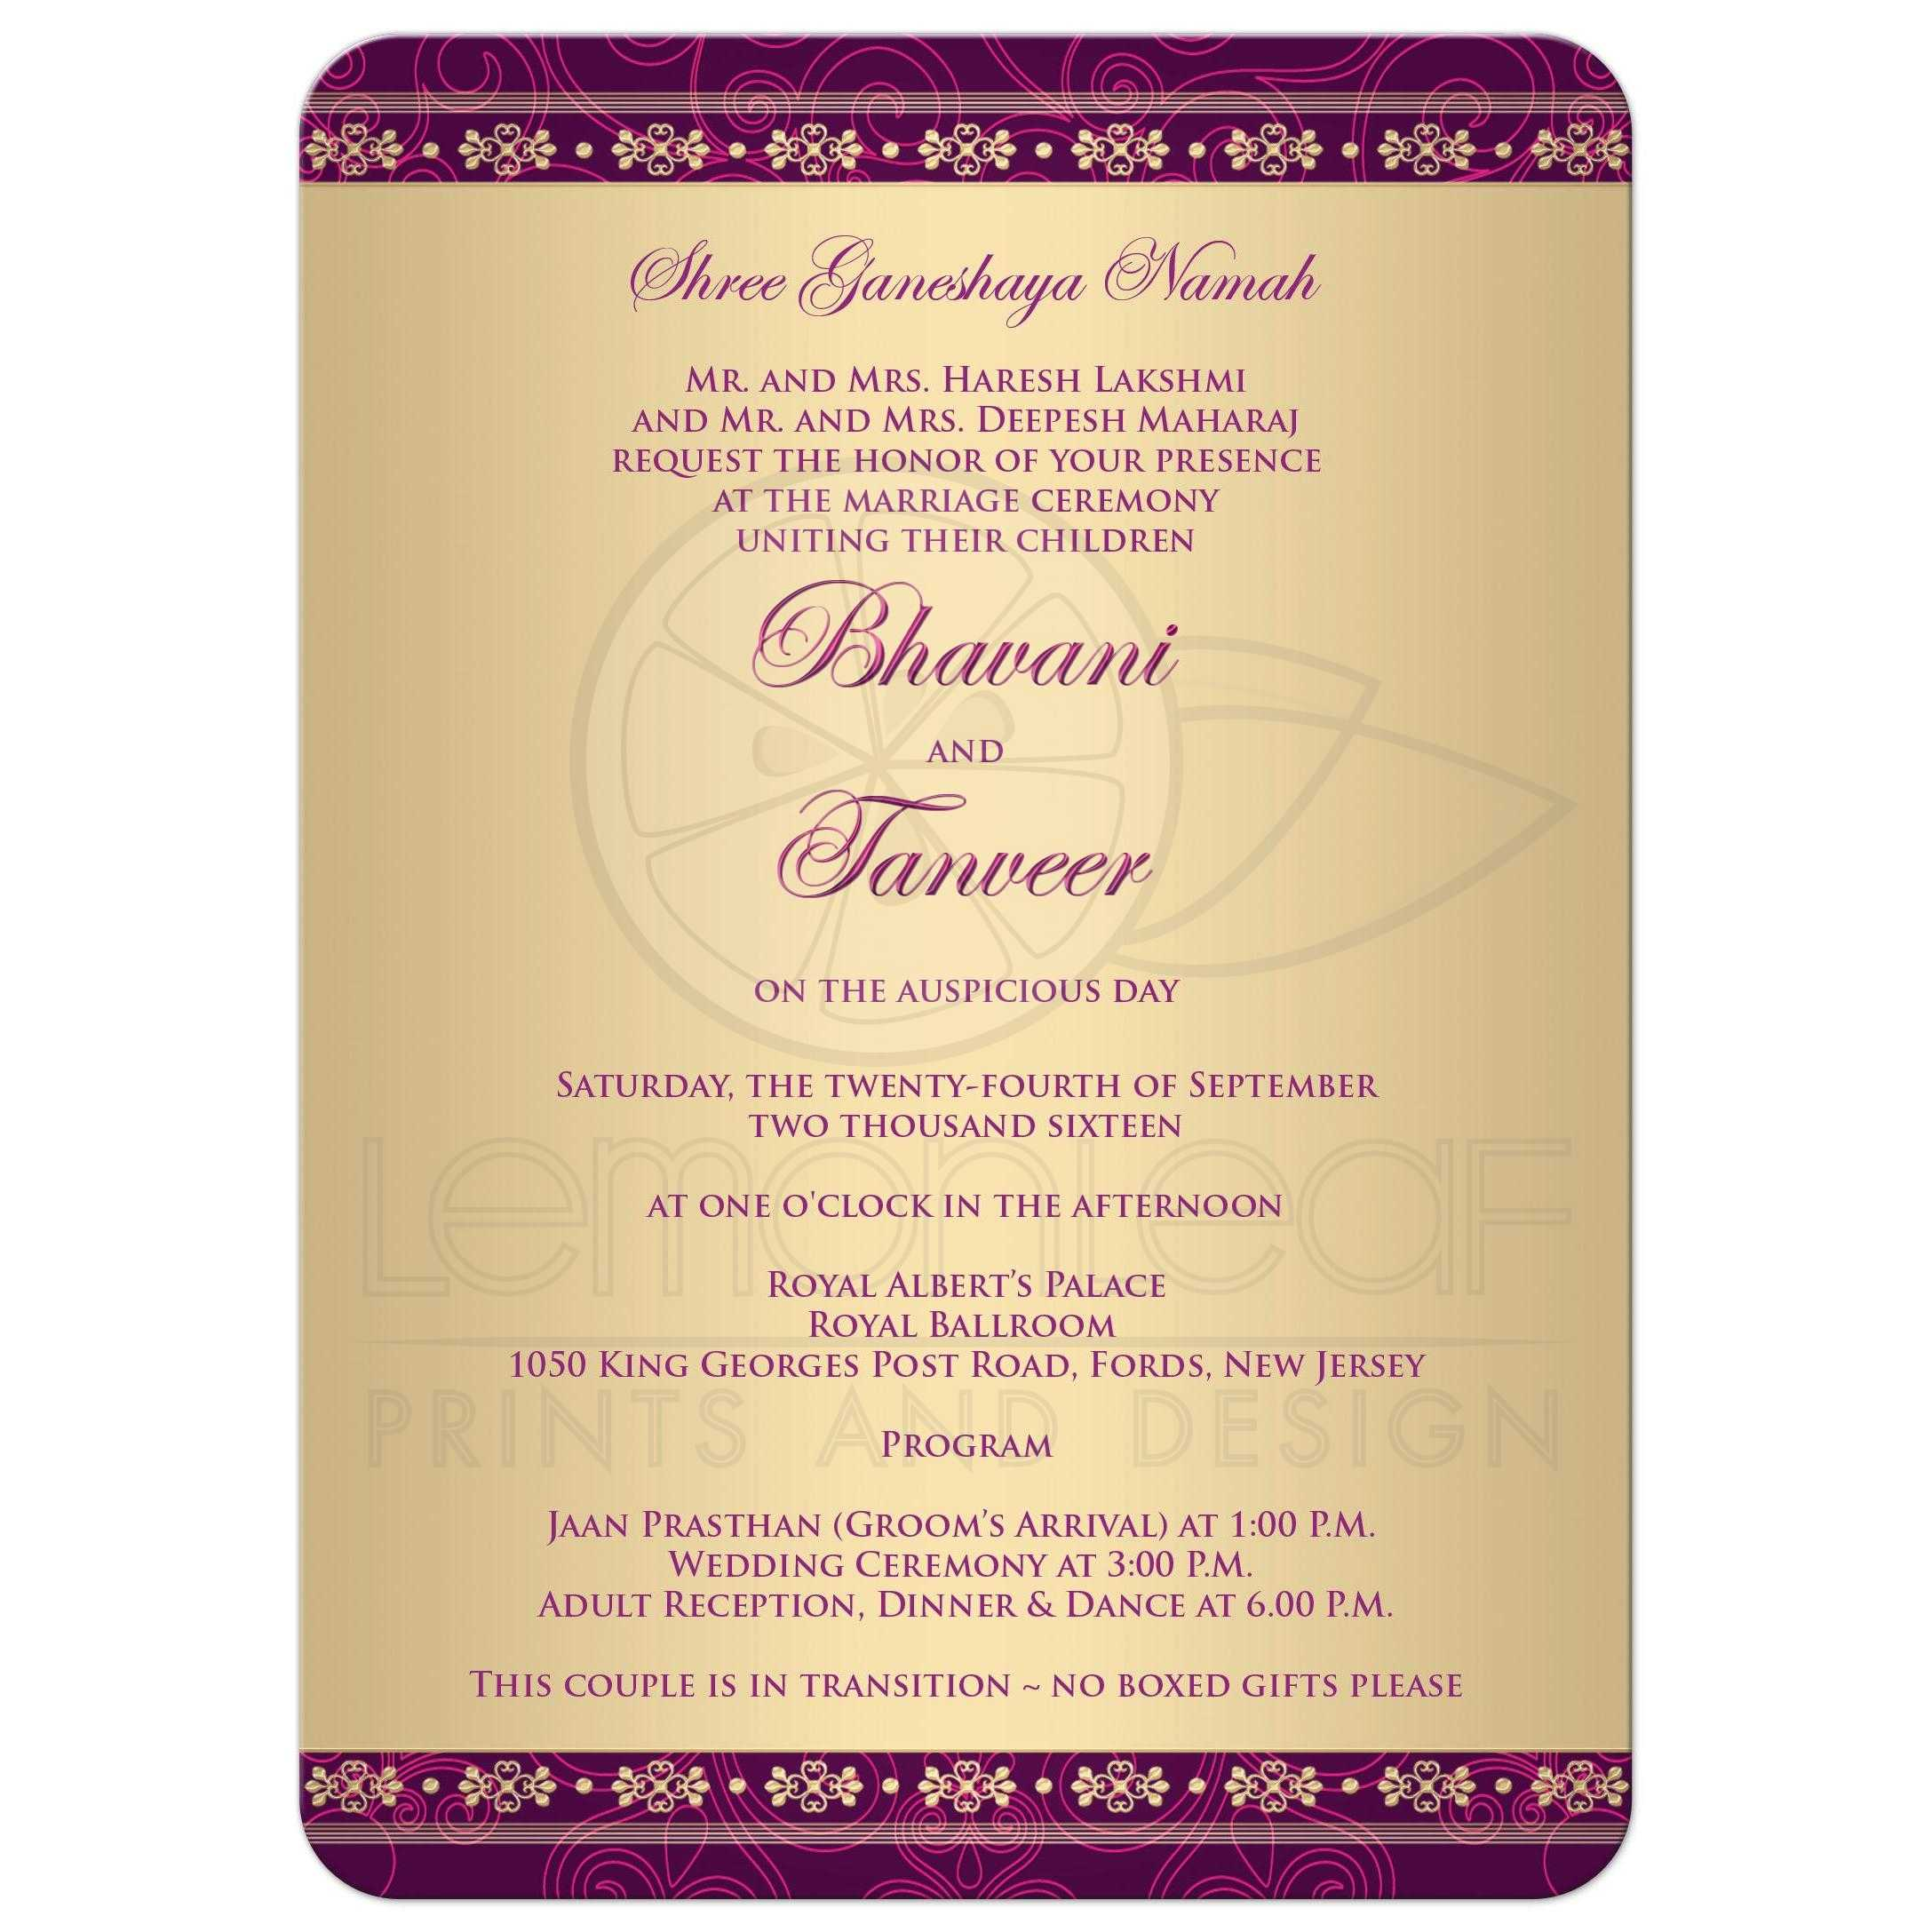 Wedding invitation circle of love purple fuchsia gold scrolls stars great east indian wedding invites in purple hot pink and gold with polka dots kristyandbryce Images